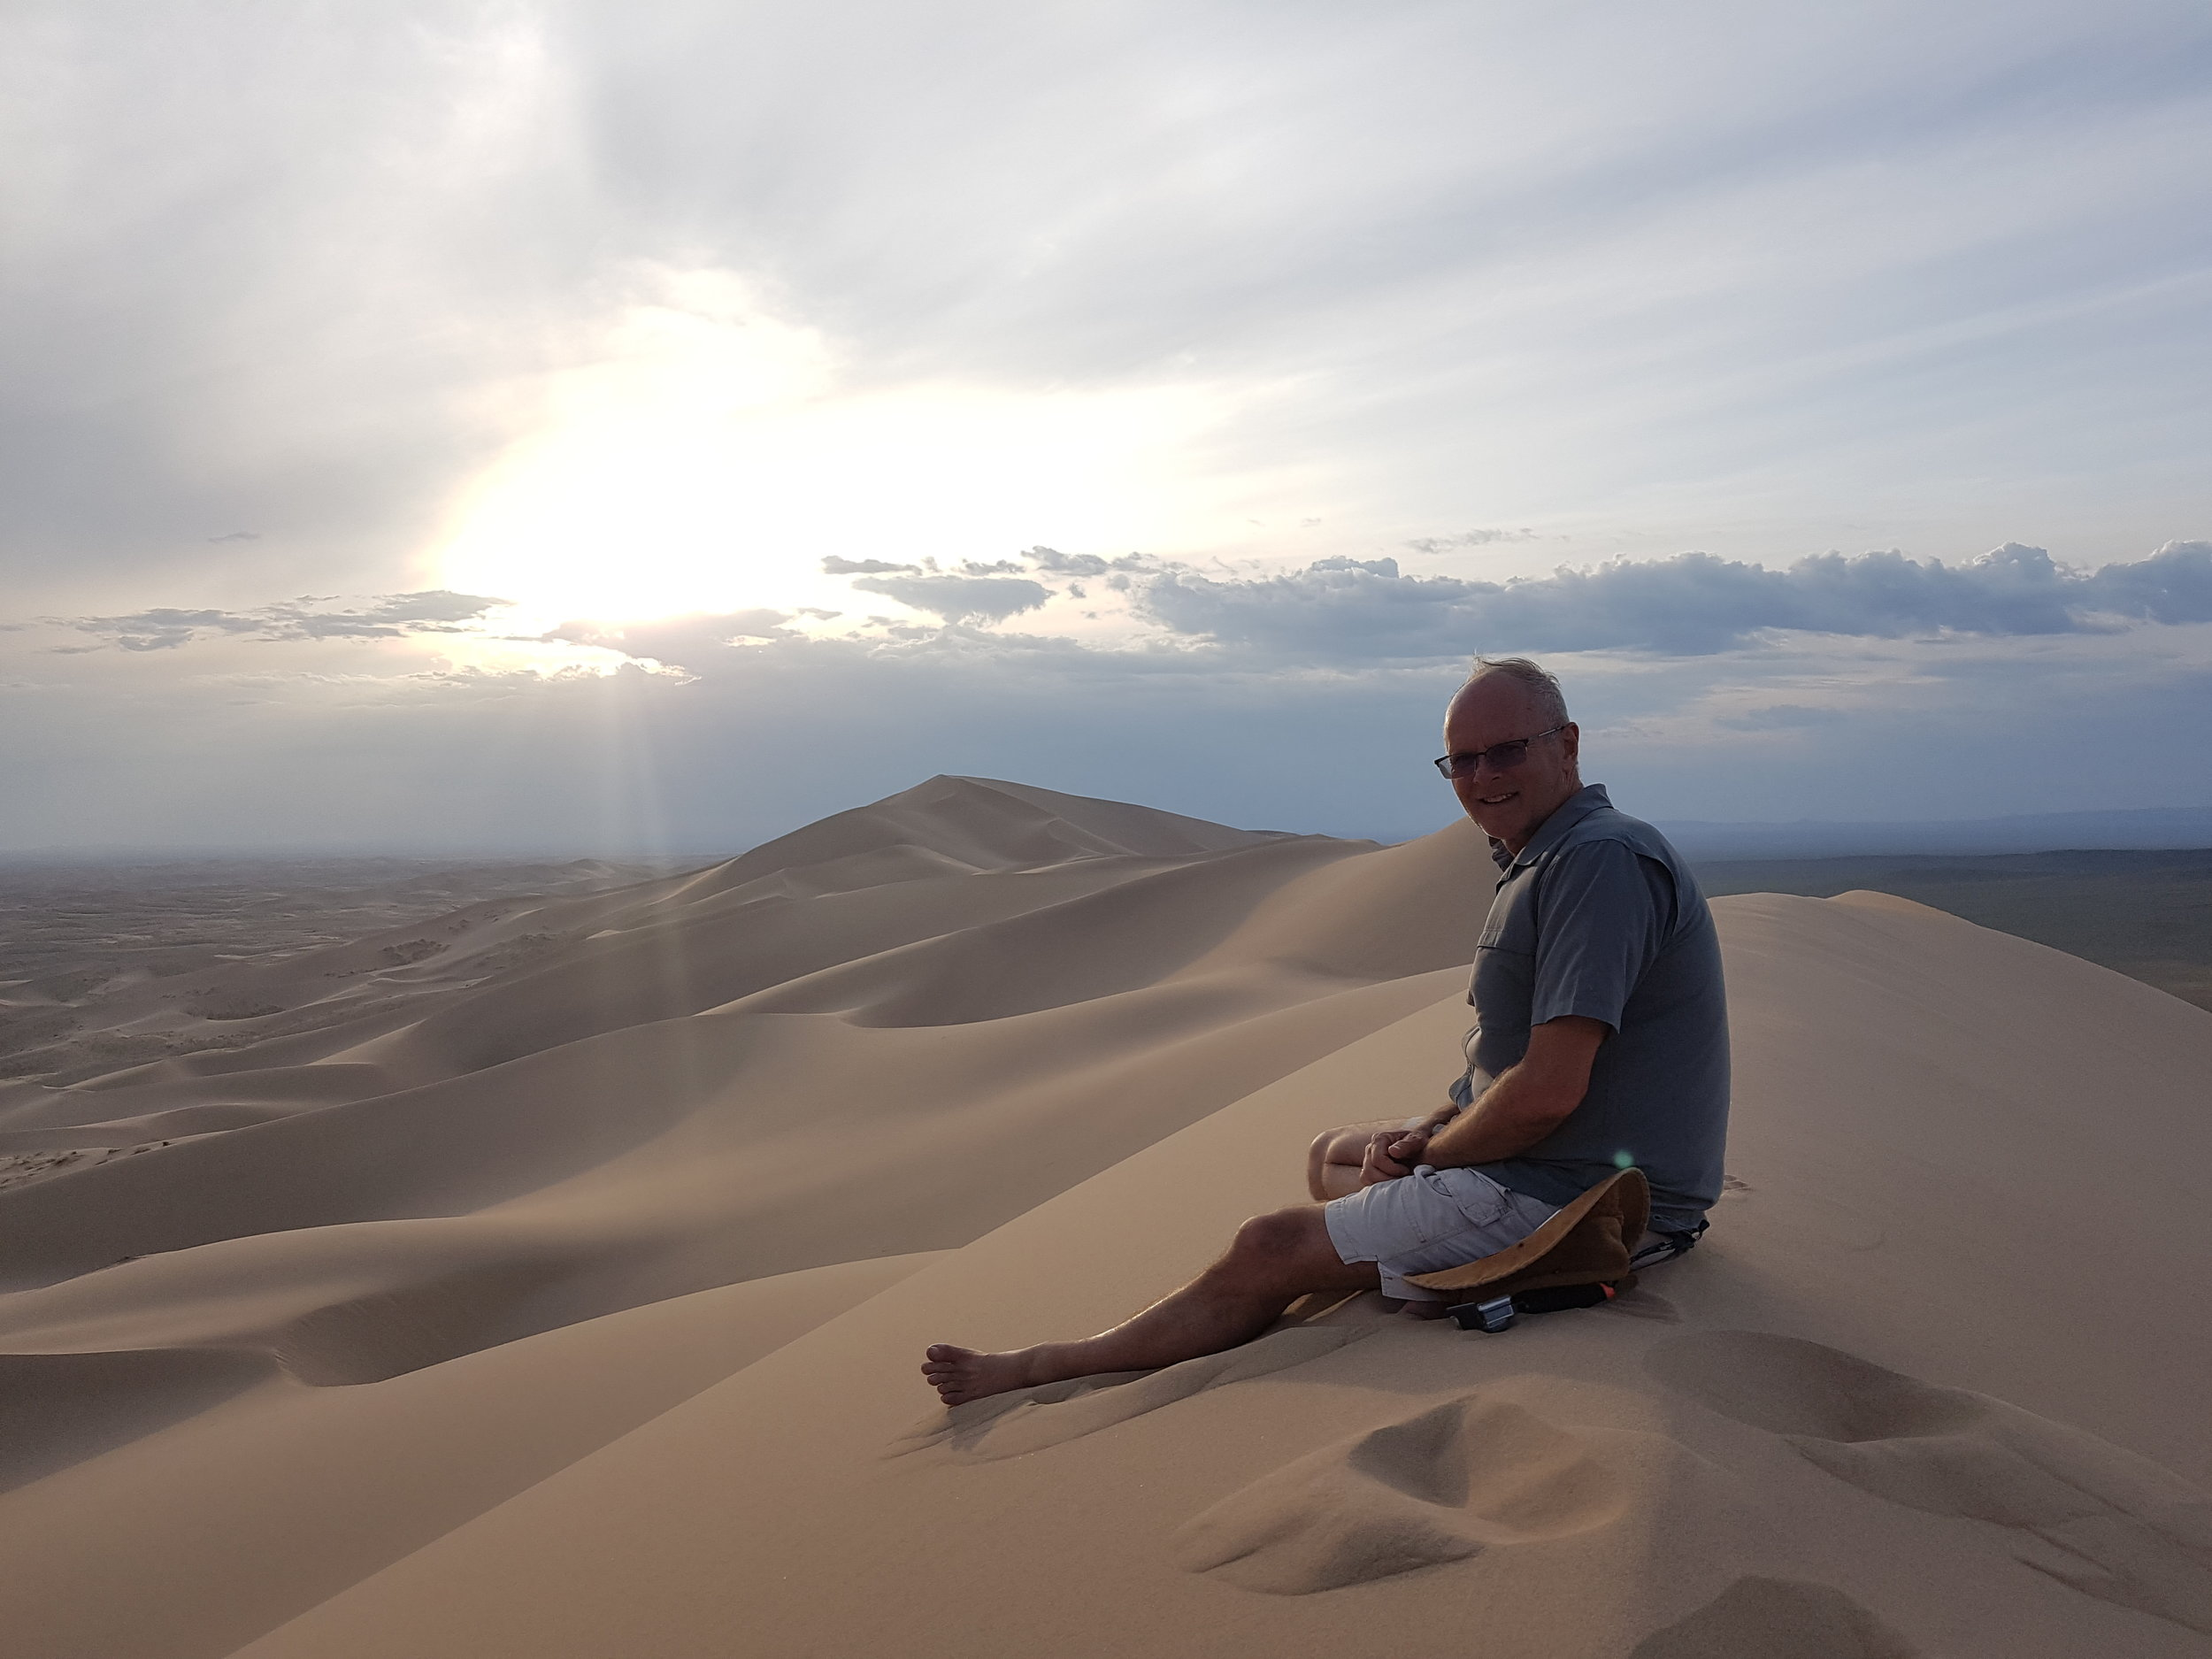 Enjoying the view on top of the 250 meter high dune